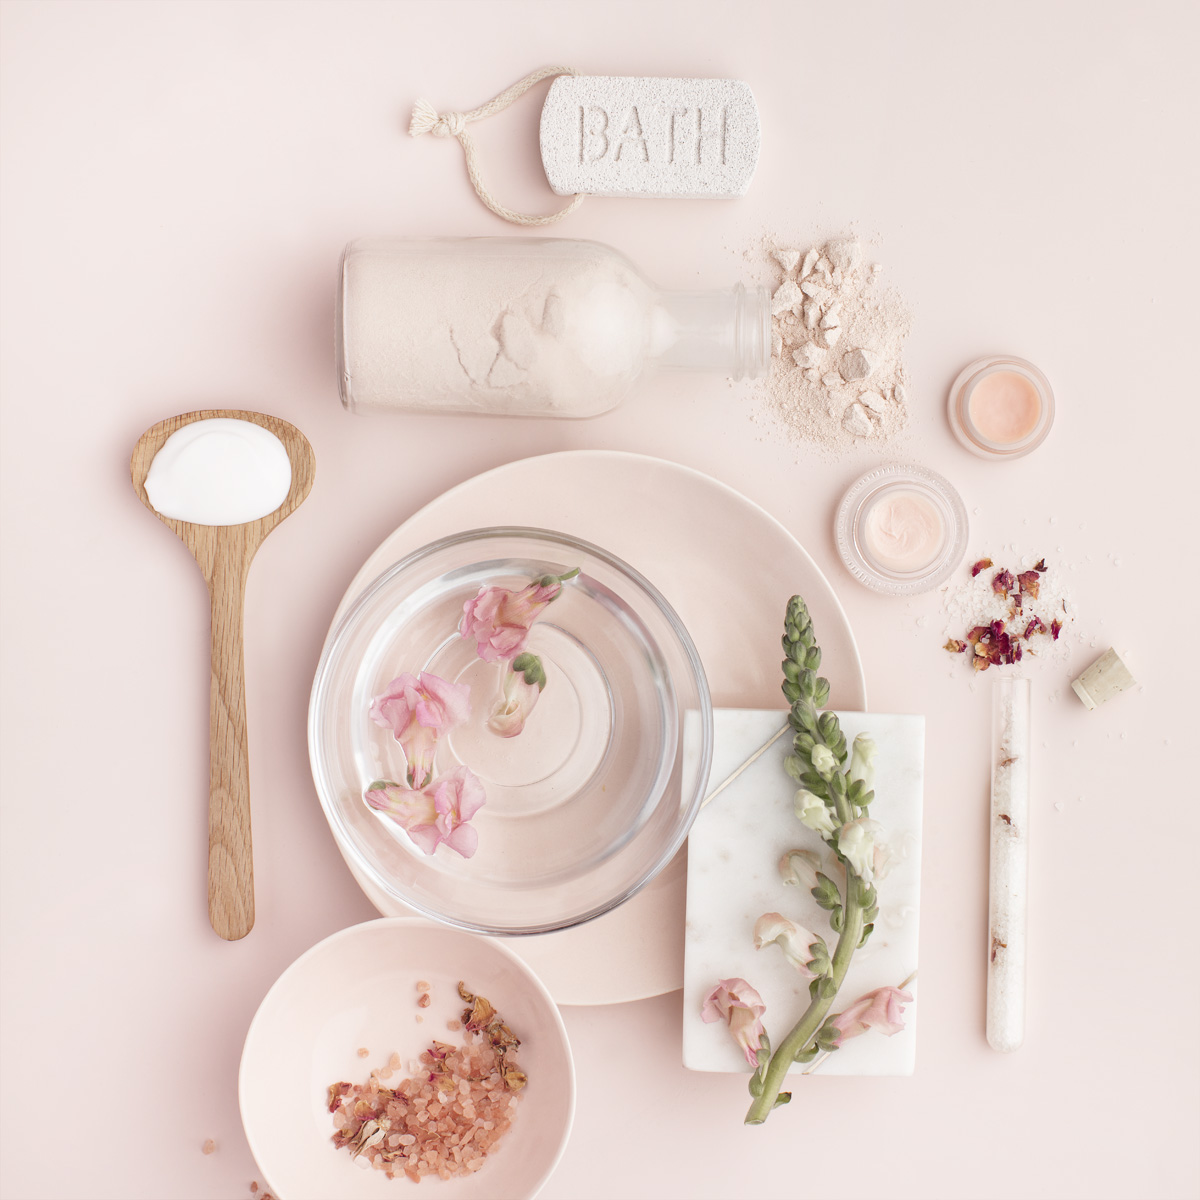 How to Run a Successful Indie Beauty Brand - May 21